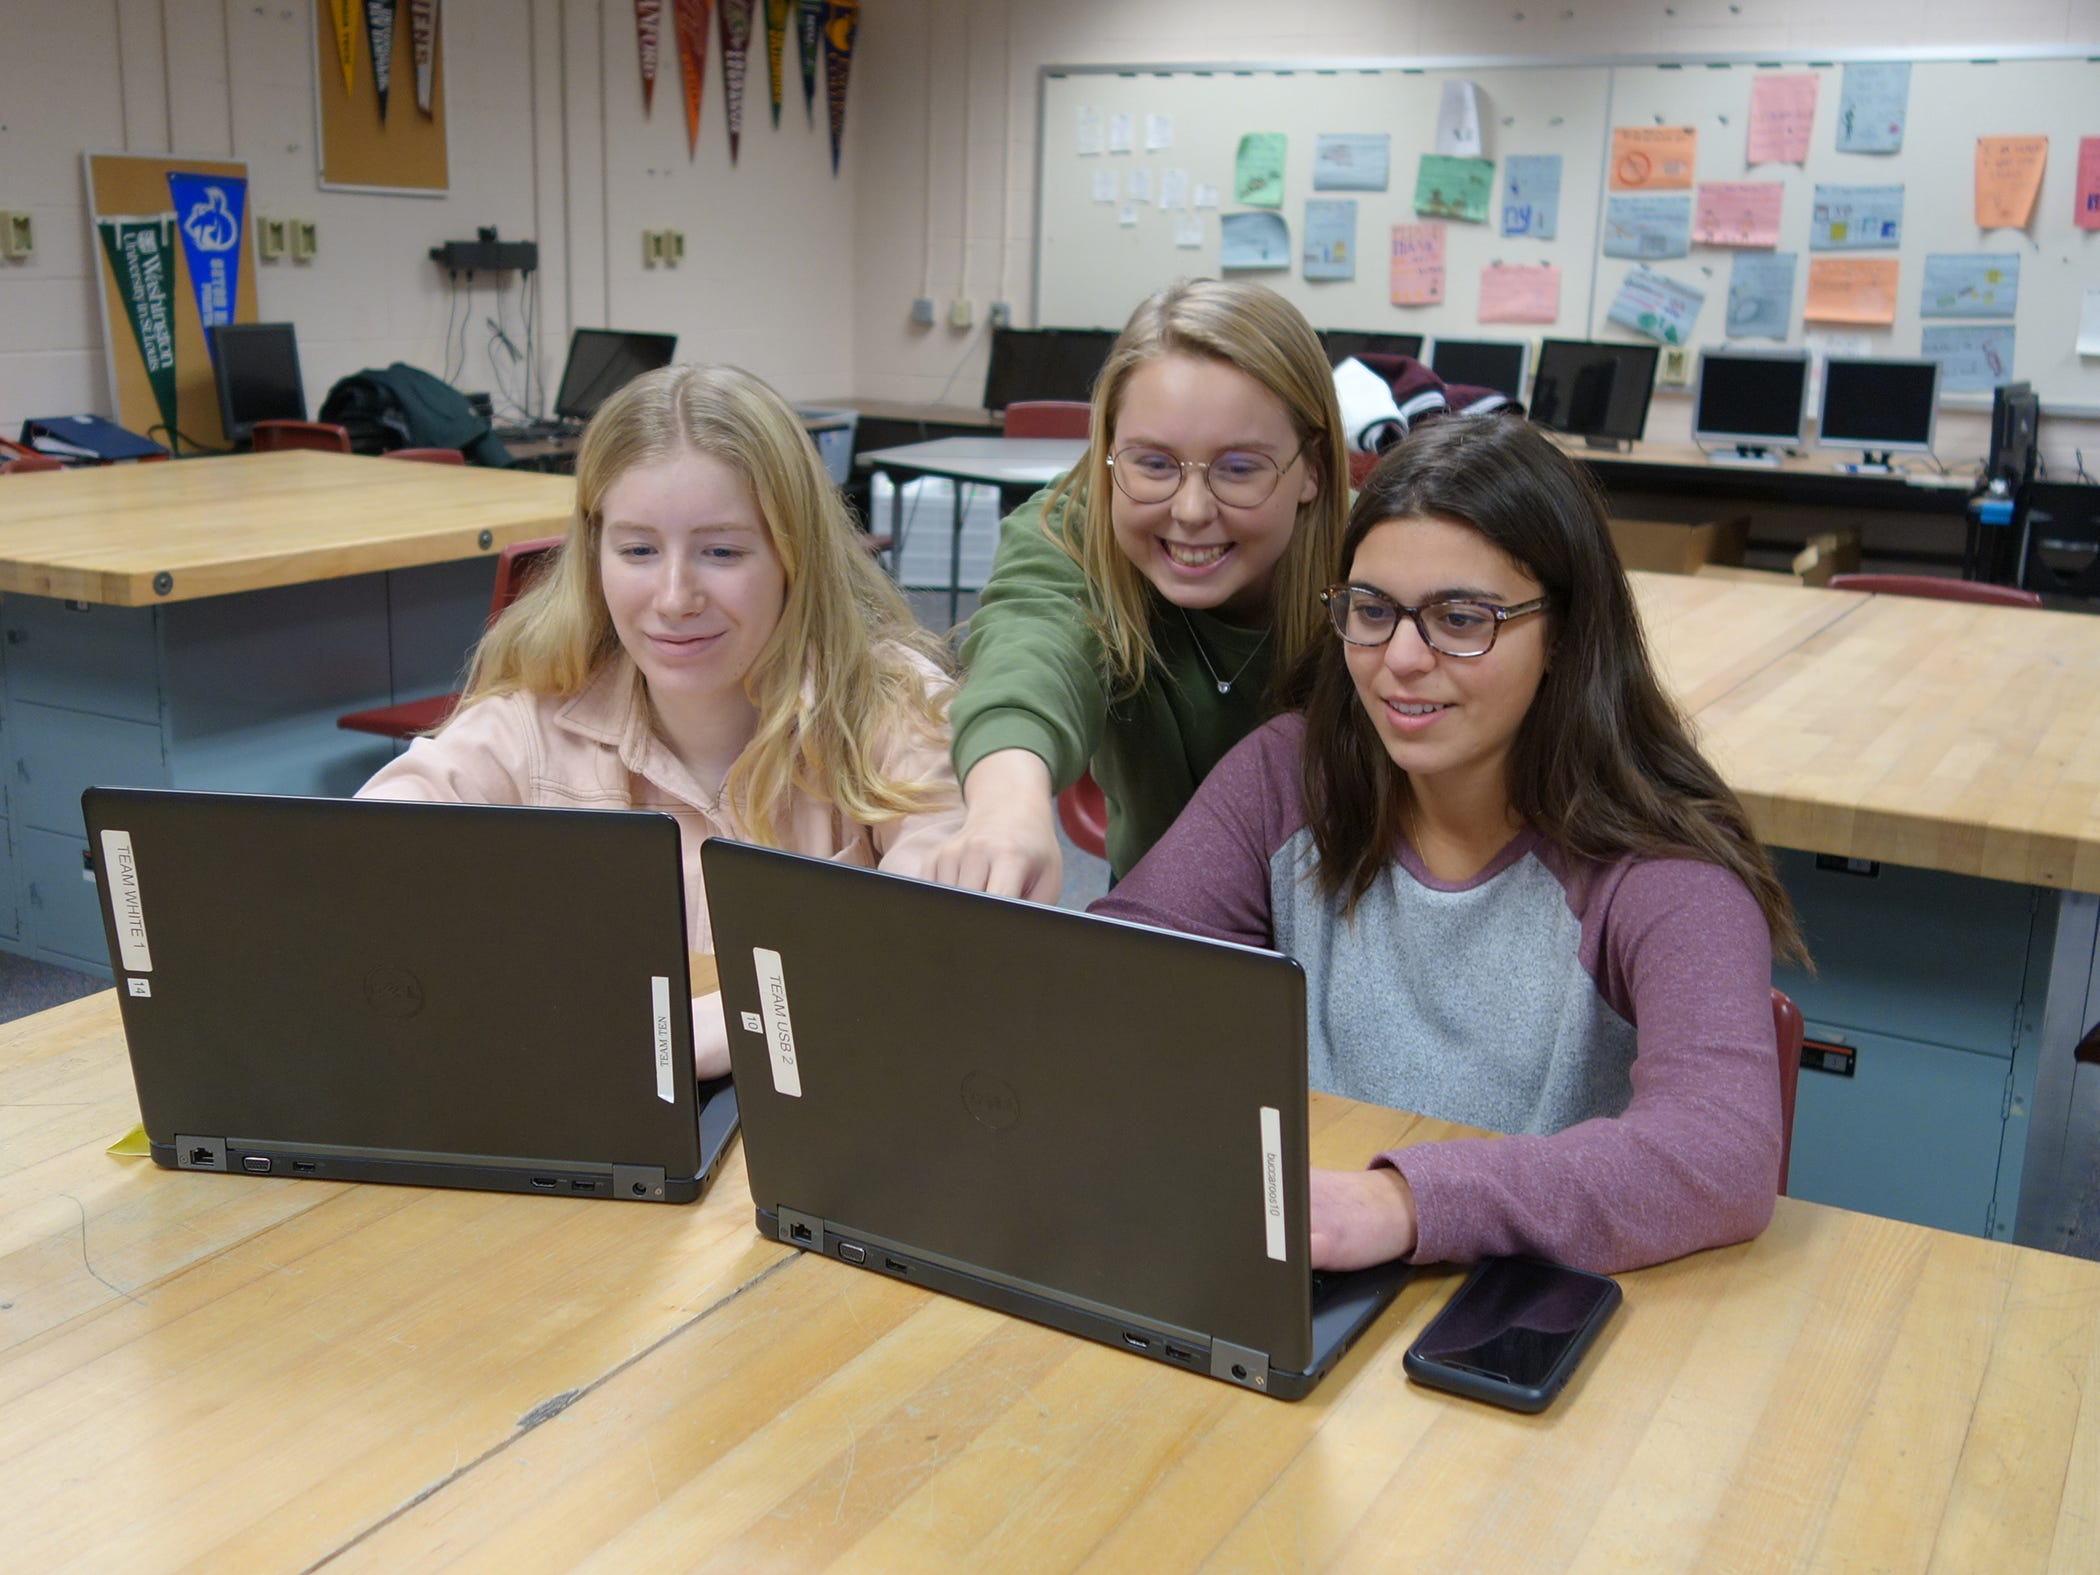 Red Bank Regional technology students were among four teams in the nation that won the first annual Girls Go Cyberstart/Cisco Essay Contest.  Pictured are: Mackenzie Wood, 17, of Oceanport; Tess Hintelmann, 16, of Little Silver; and Allessandra Swart, 16, of Spring Lake.  The other three winners were from teams in Indiana, Texas and High Tech High in Lincroft, New Jersey.